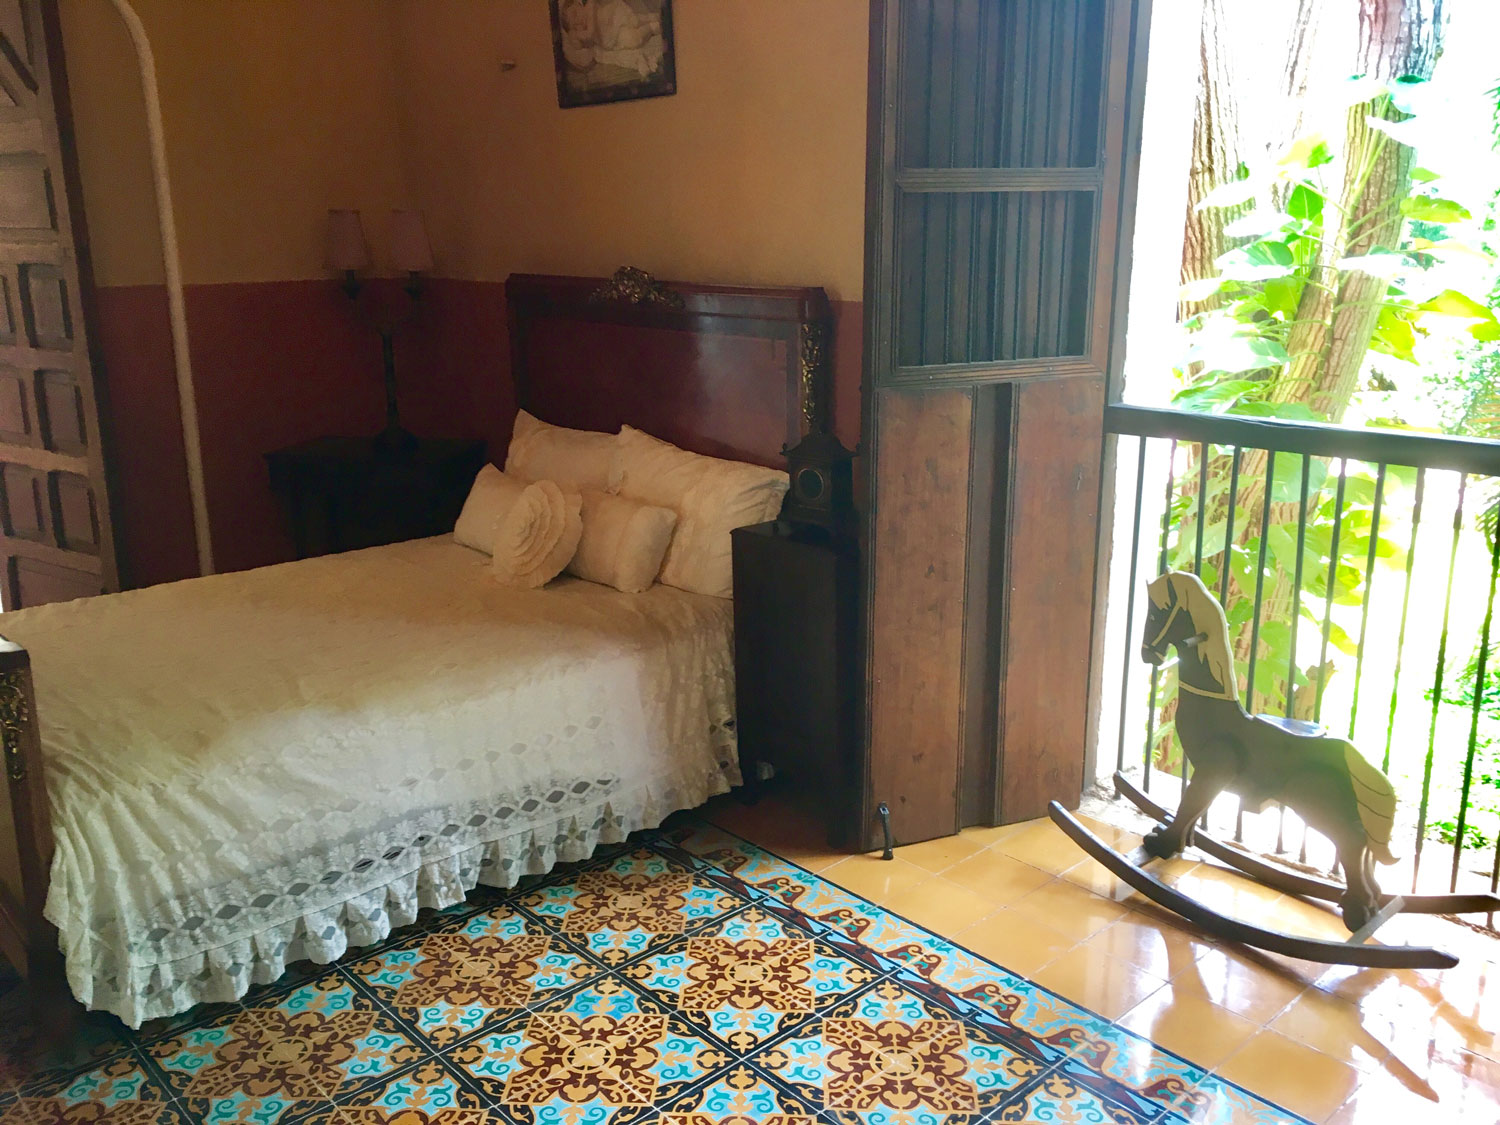 The only bedroom in the house as the owner had to visit a number of his haciendas in a row. His main residence was in Mérida.